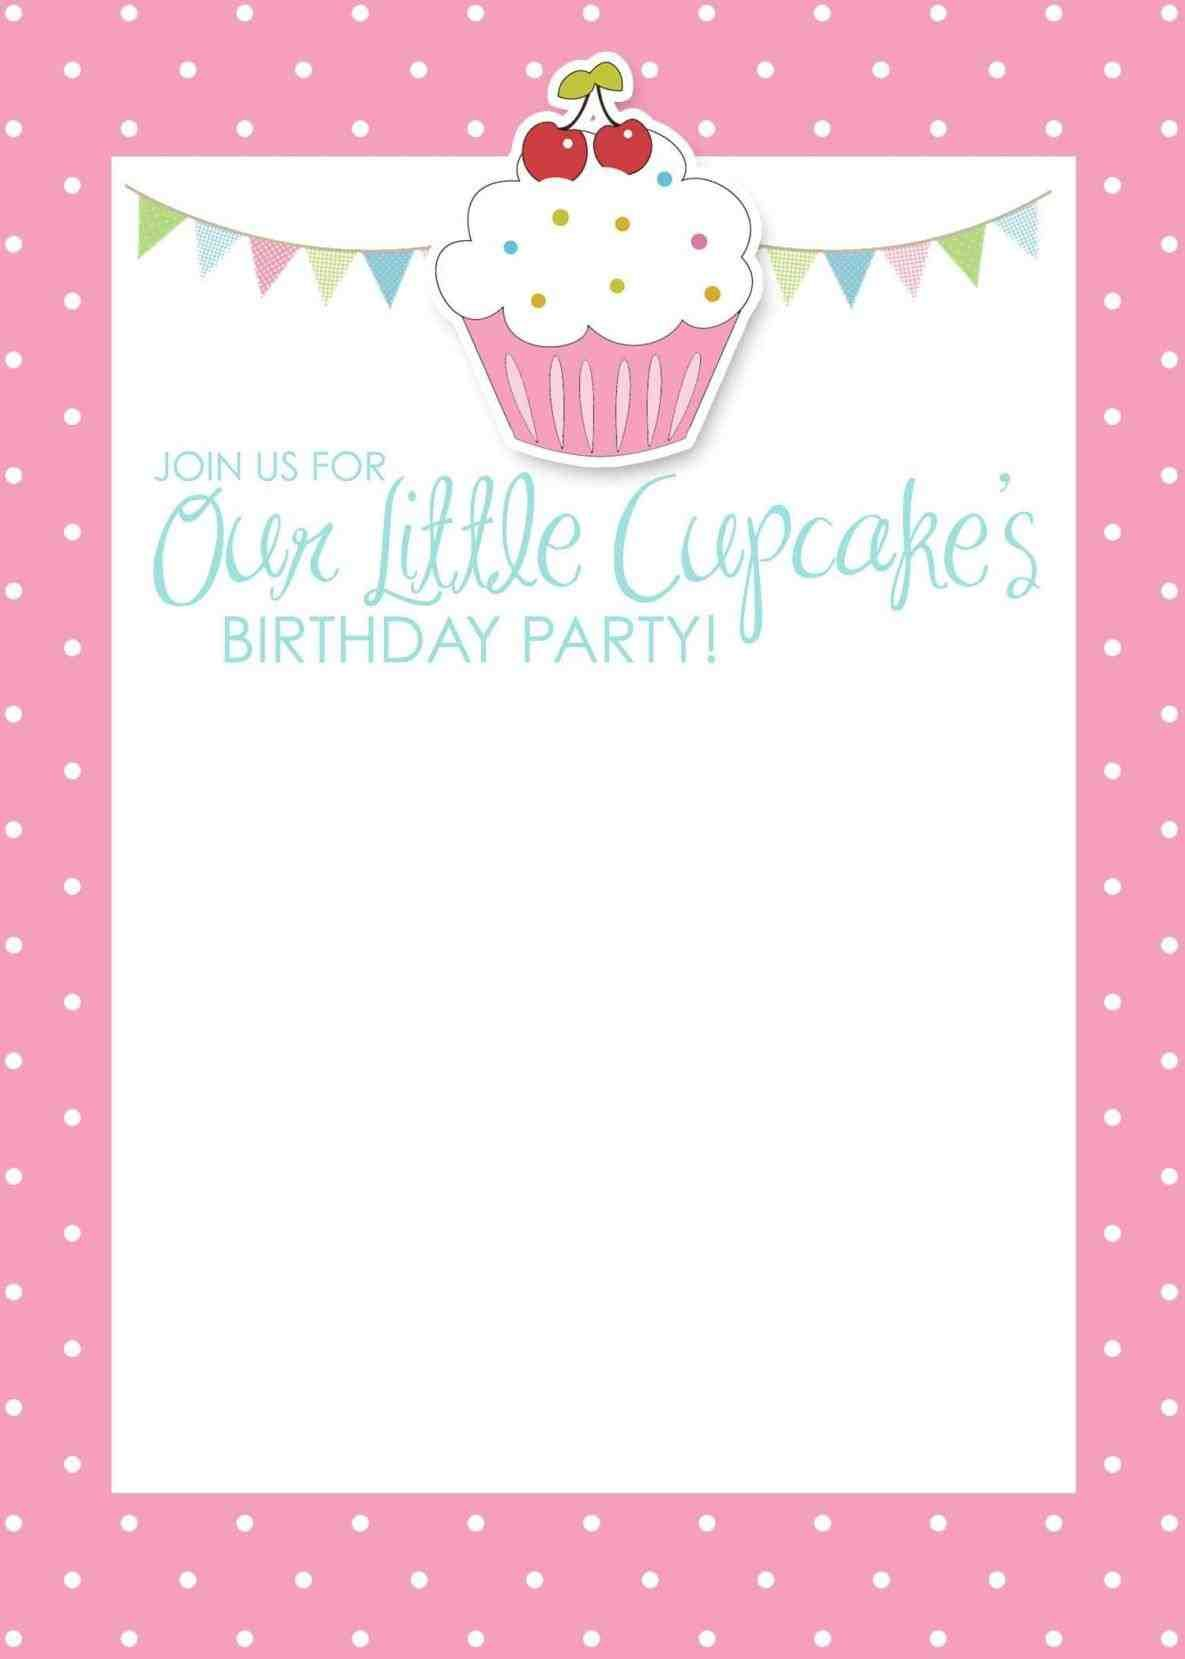 bbq birthday party invitation wording. dog themed birthday party ...